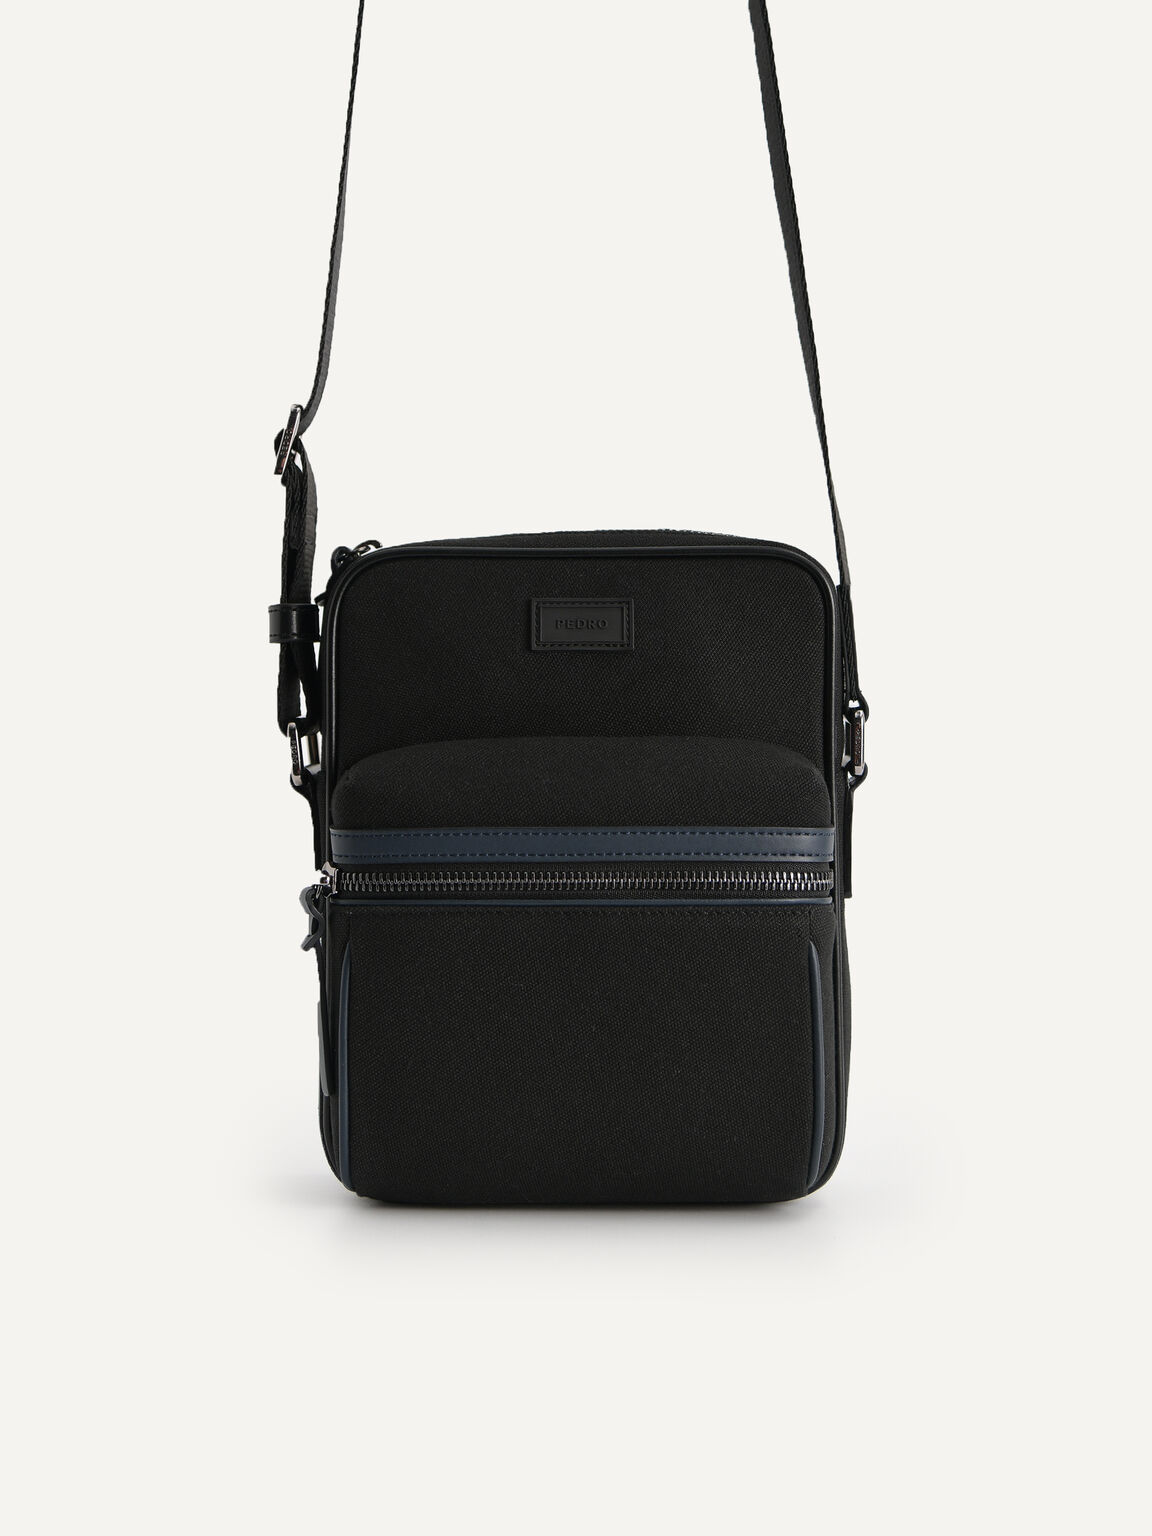 rePEDRO Casual Sling Bag, Black, hi-res